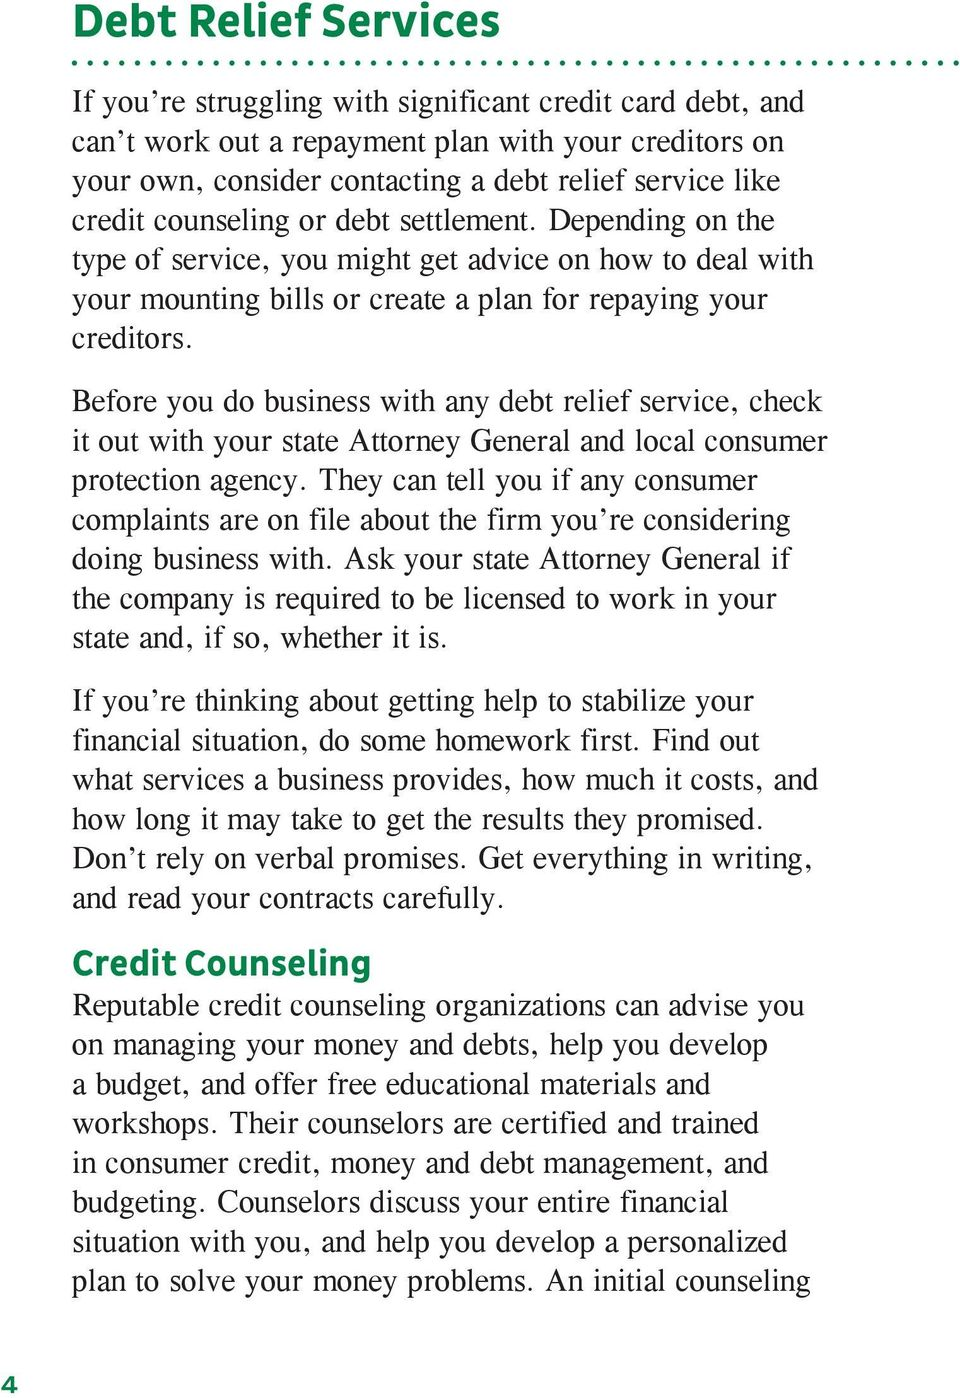 Before you do business with any debt relief service, check it out with your state Attorney General and local consumer protection agency.